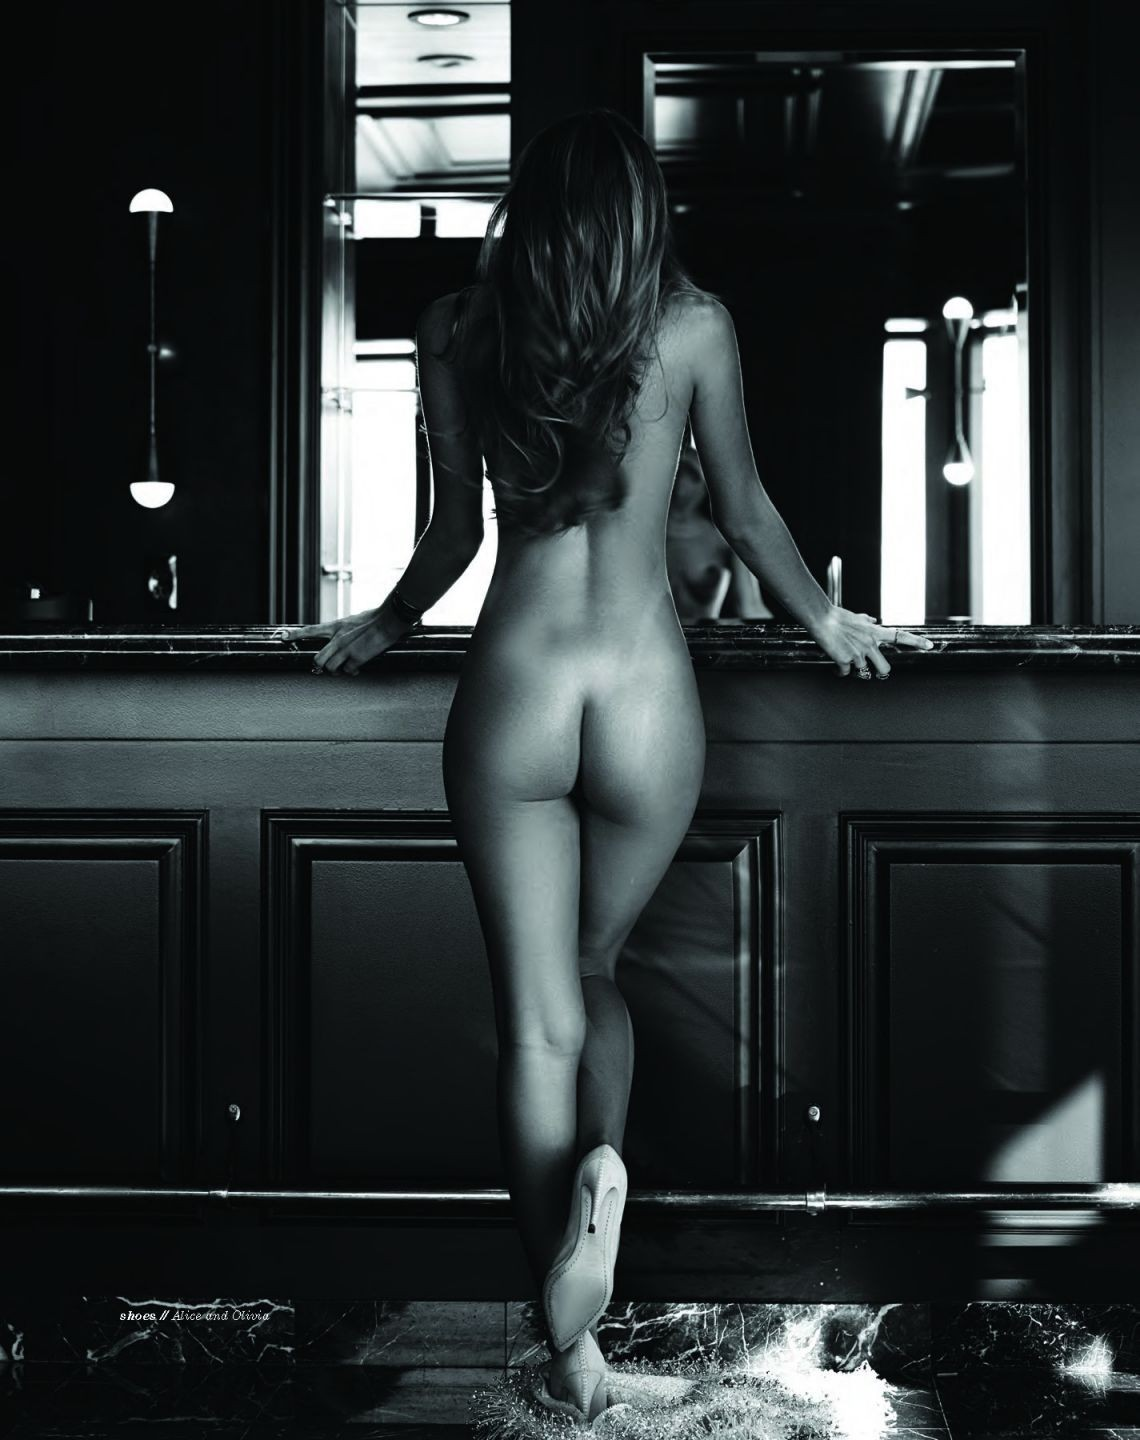 Emily ratajkowski naked treats magazine issue 3 by steve shaw 1 2012 5